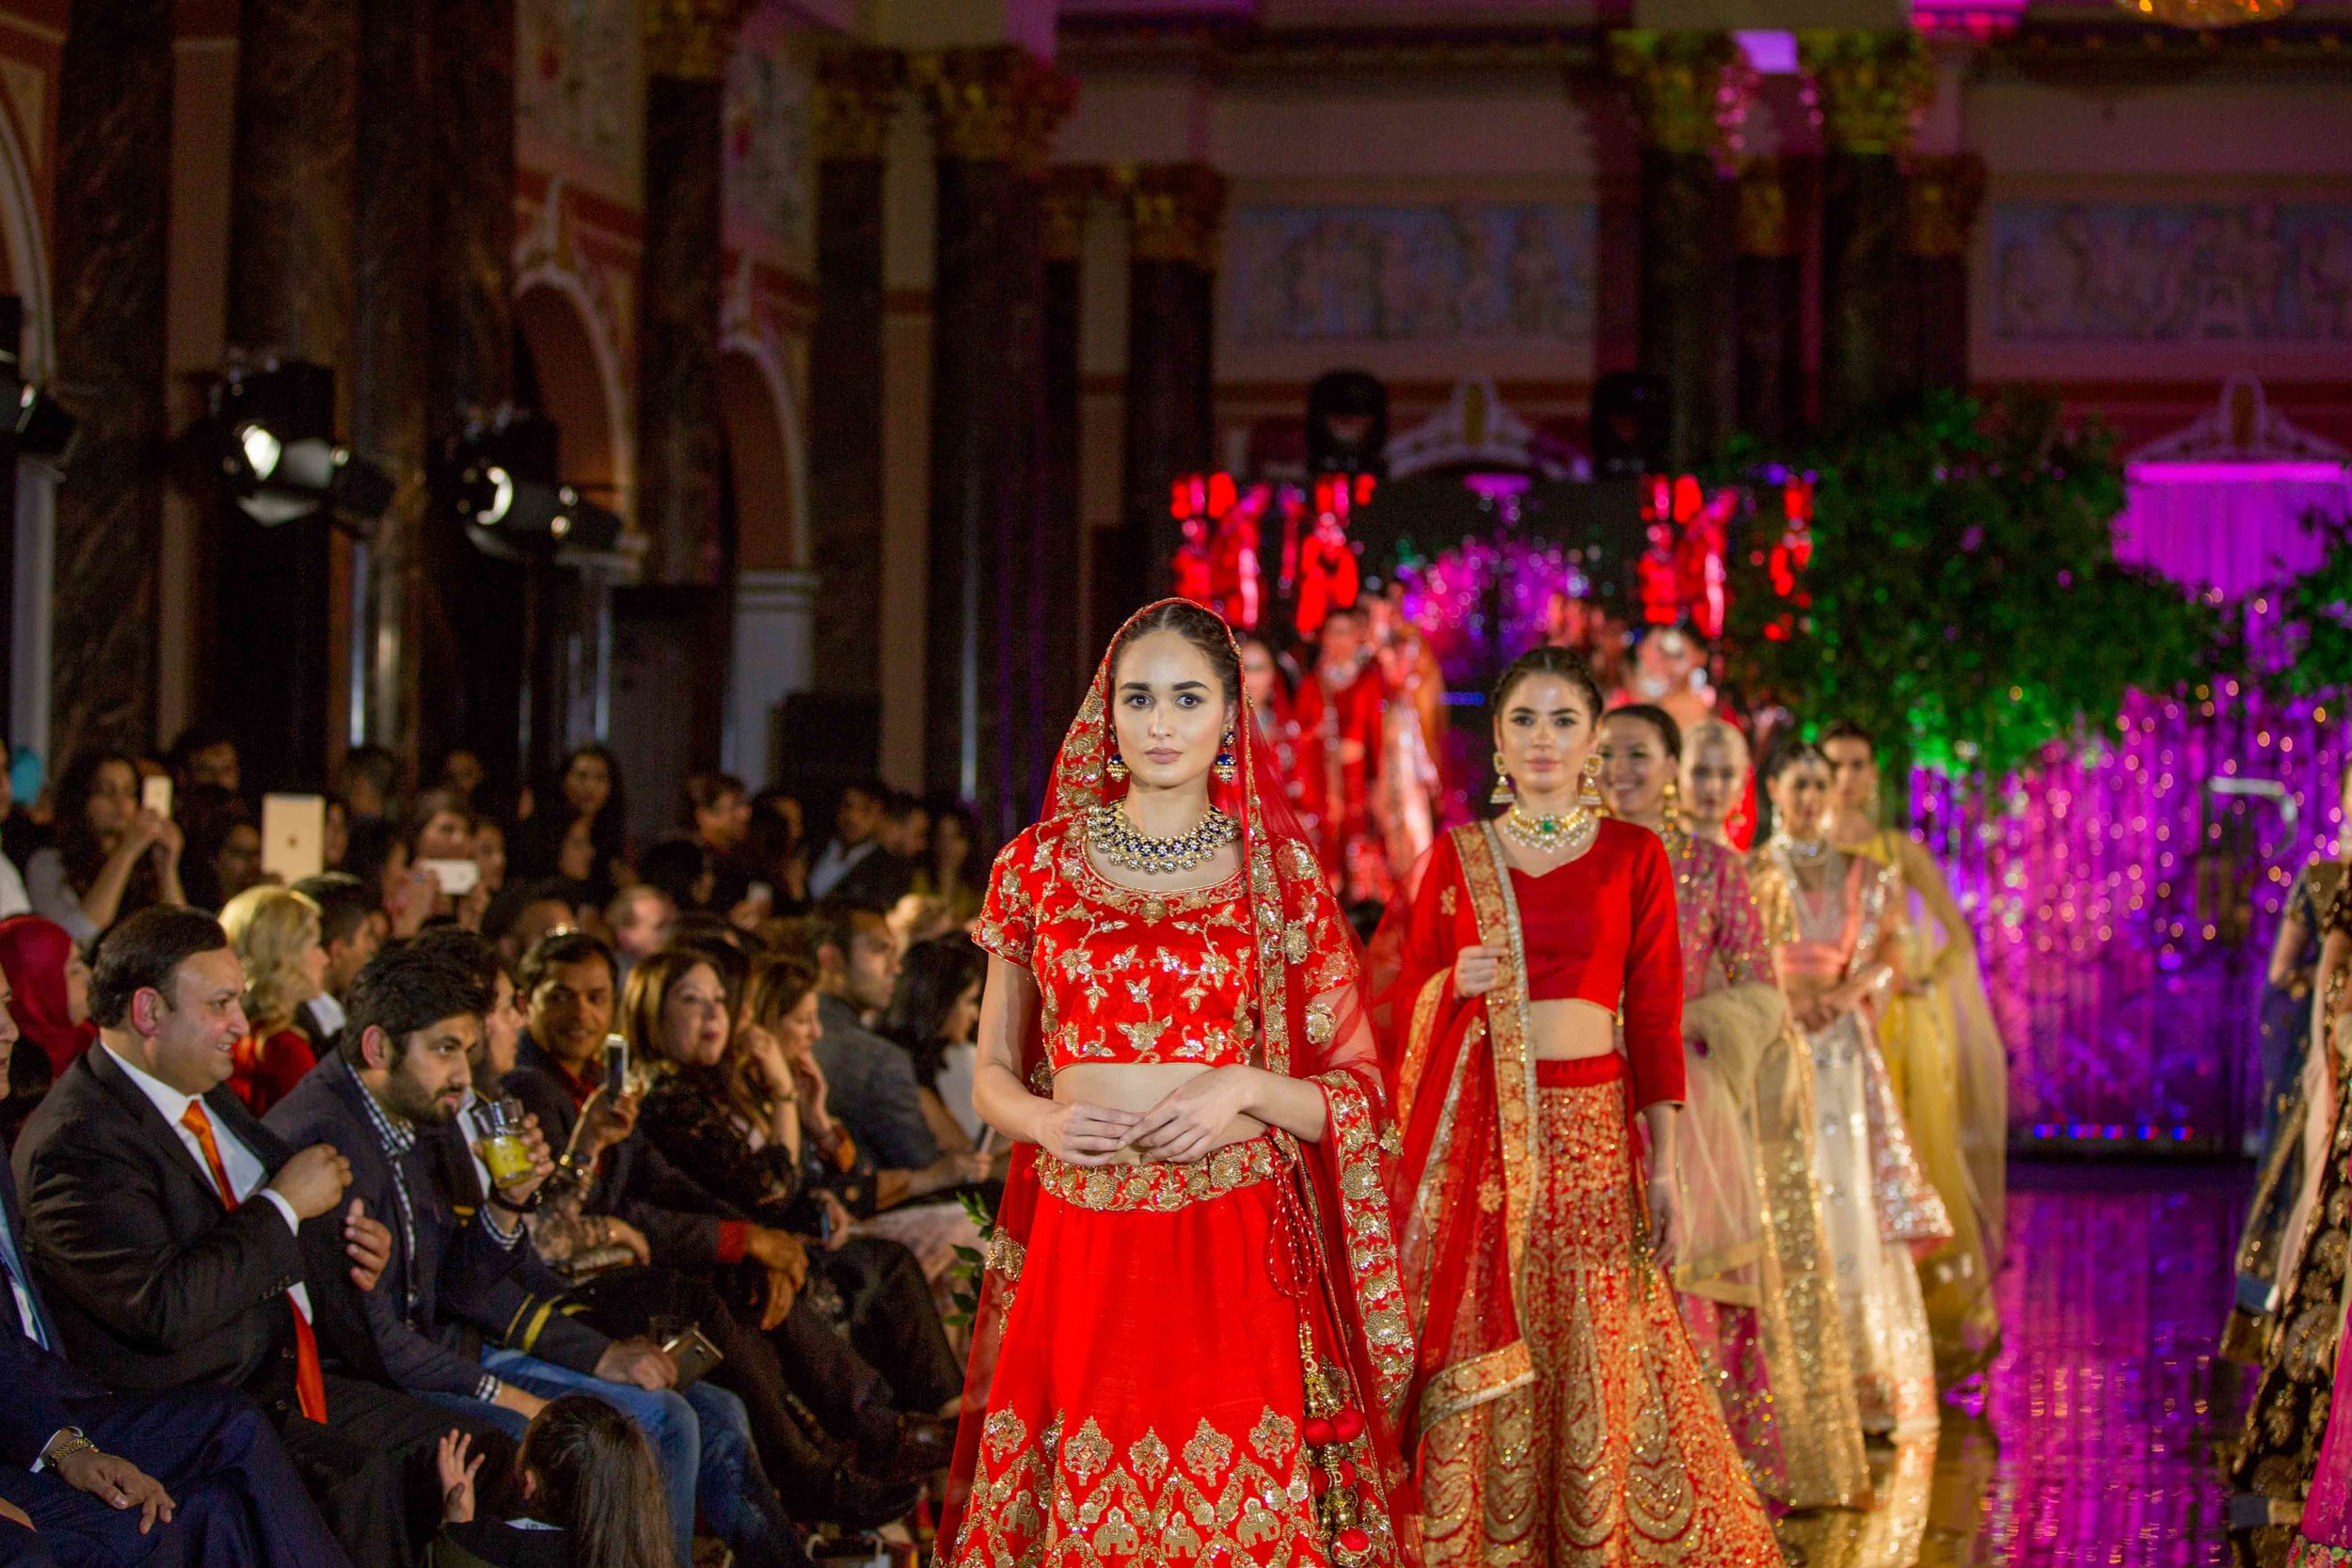 IPLF-IPL-Indian-Pakistani-London-Fashion-London-Week-catwalk-photographer-natalia-smith-photography-Nomi-Ansari-32.jpg